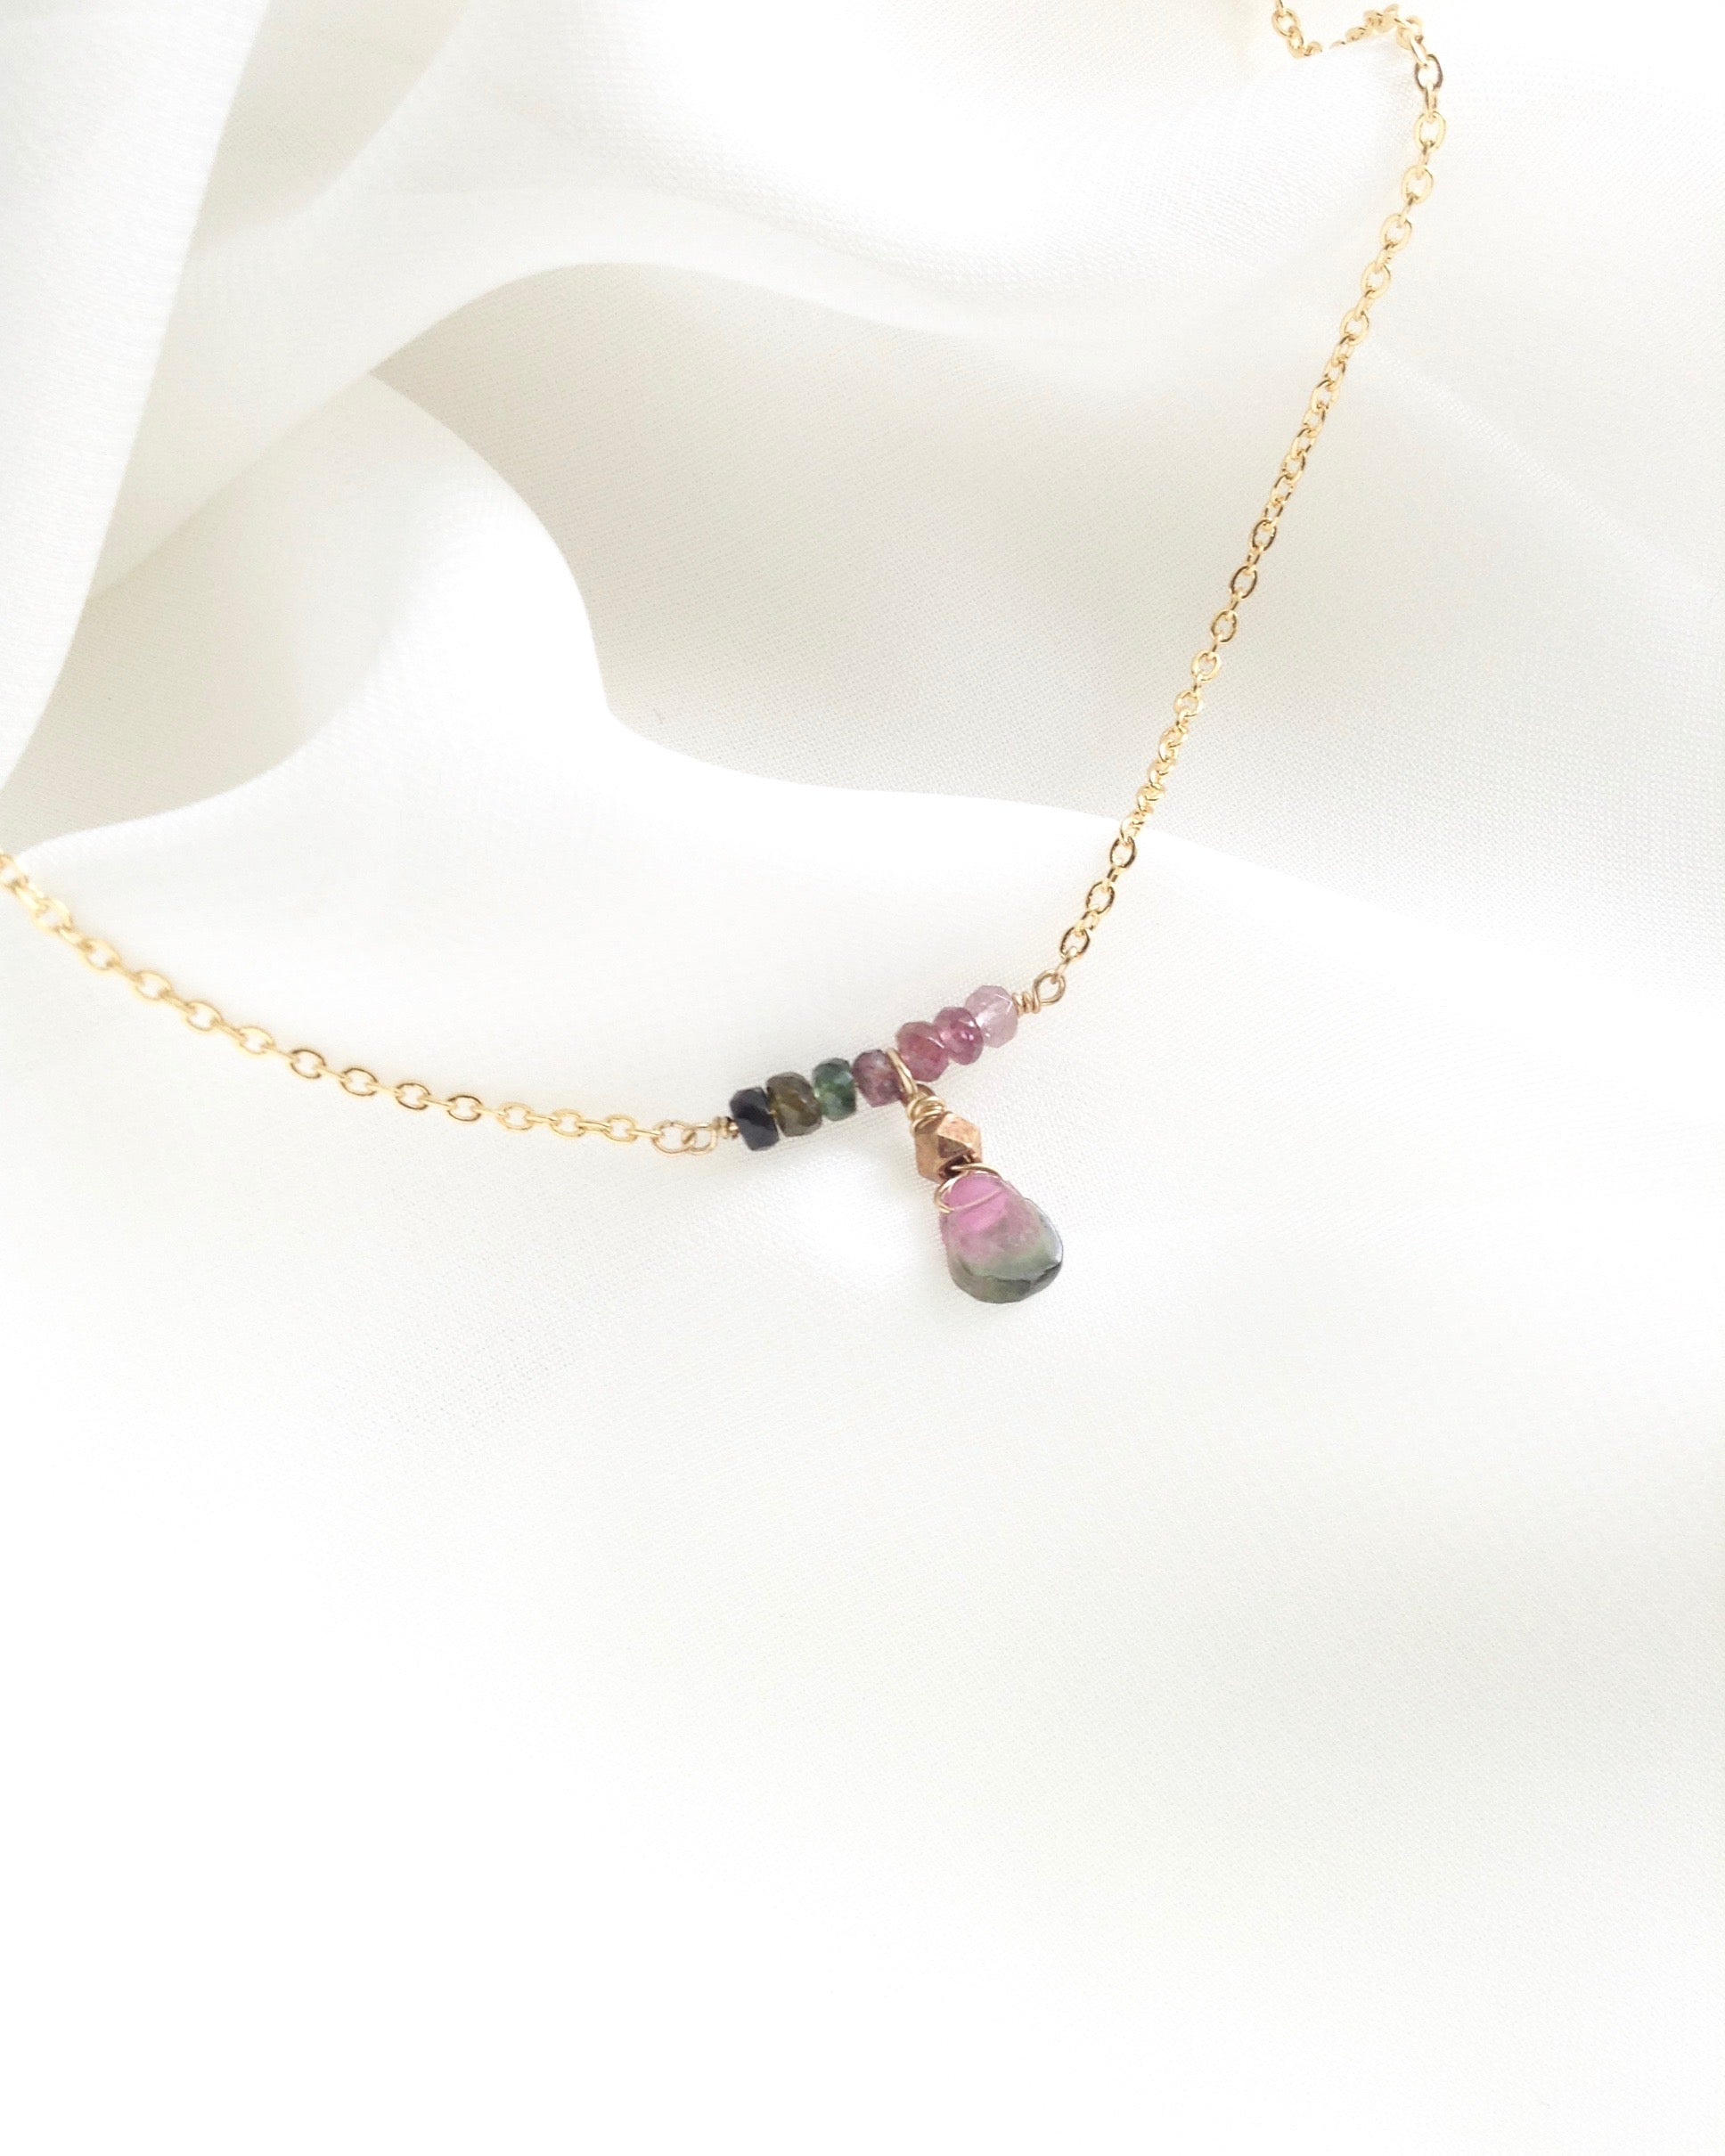 Delicate Tourmaline Necklace in Gold Filled or Sterling Silver | IB Jewelry